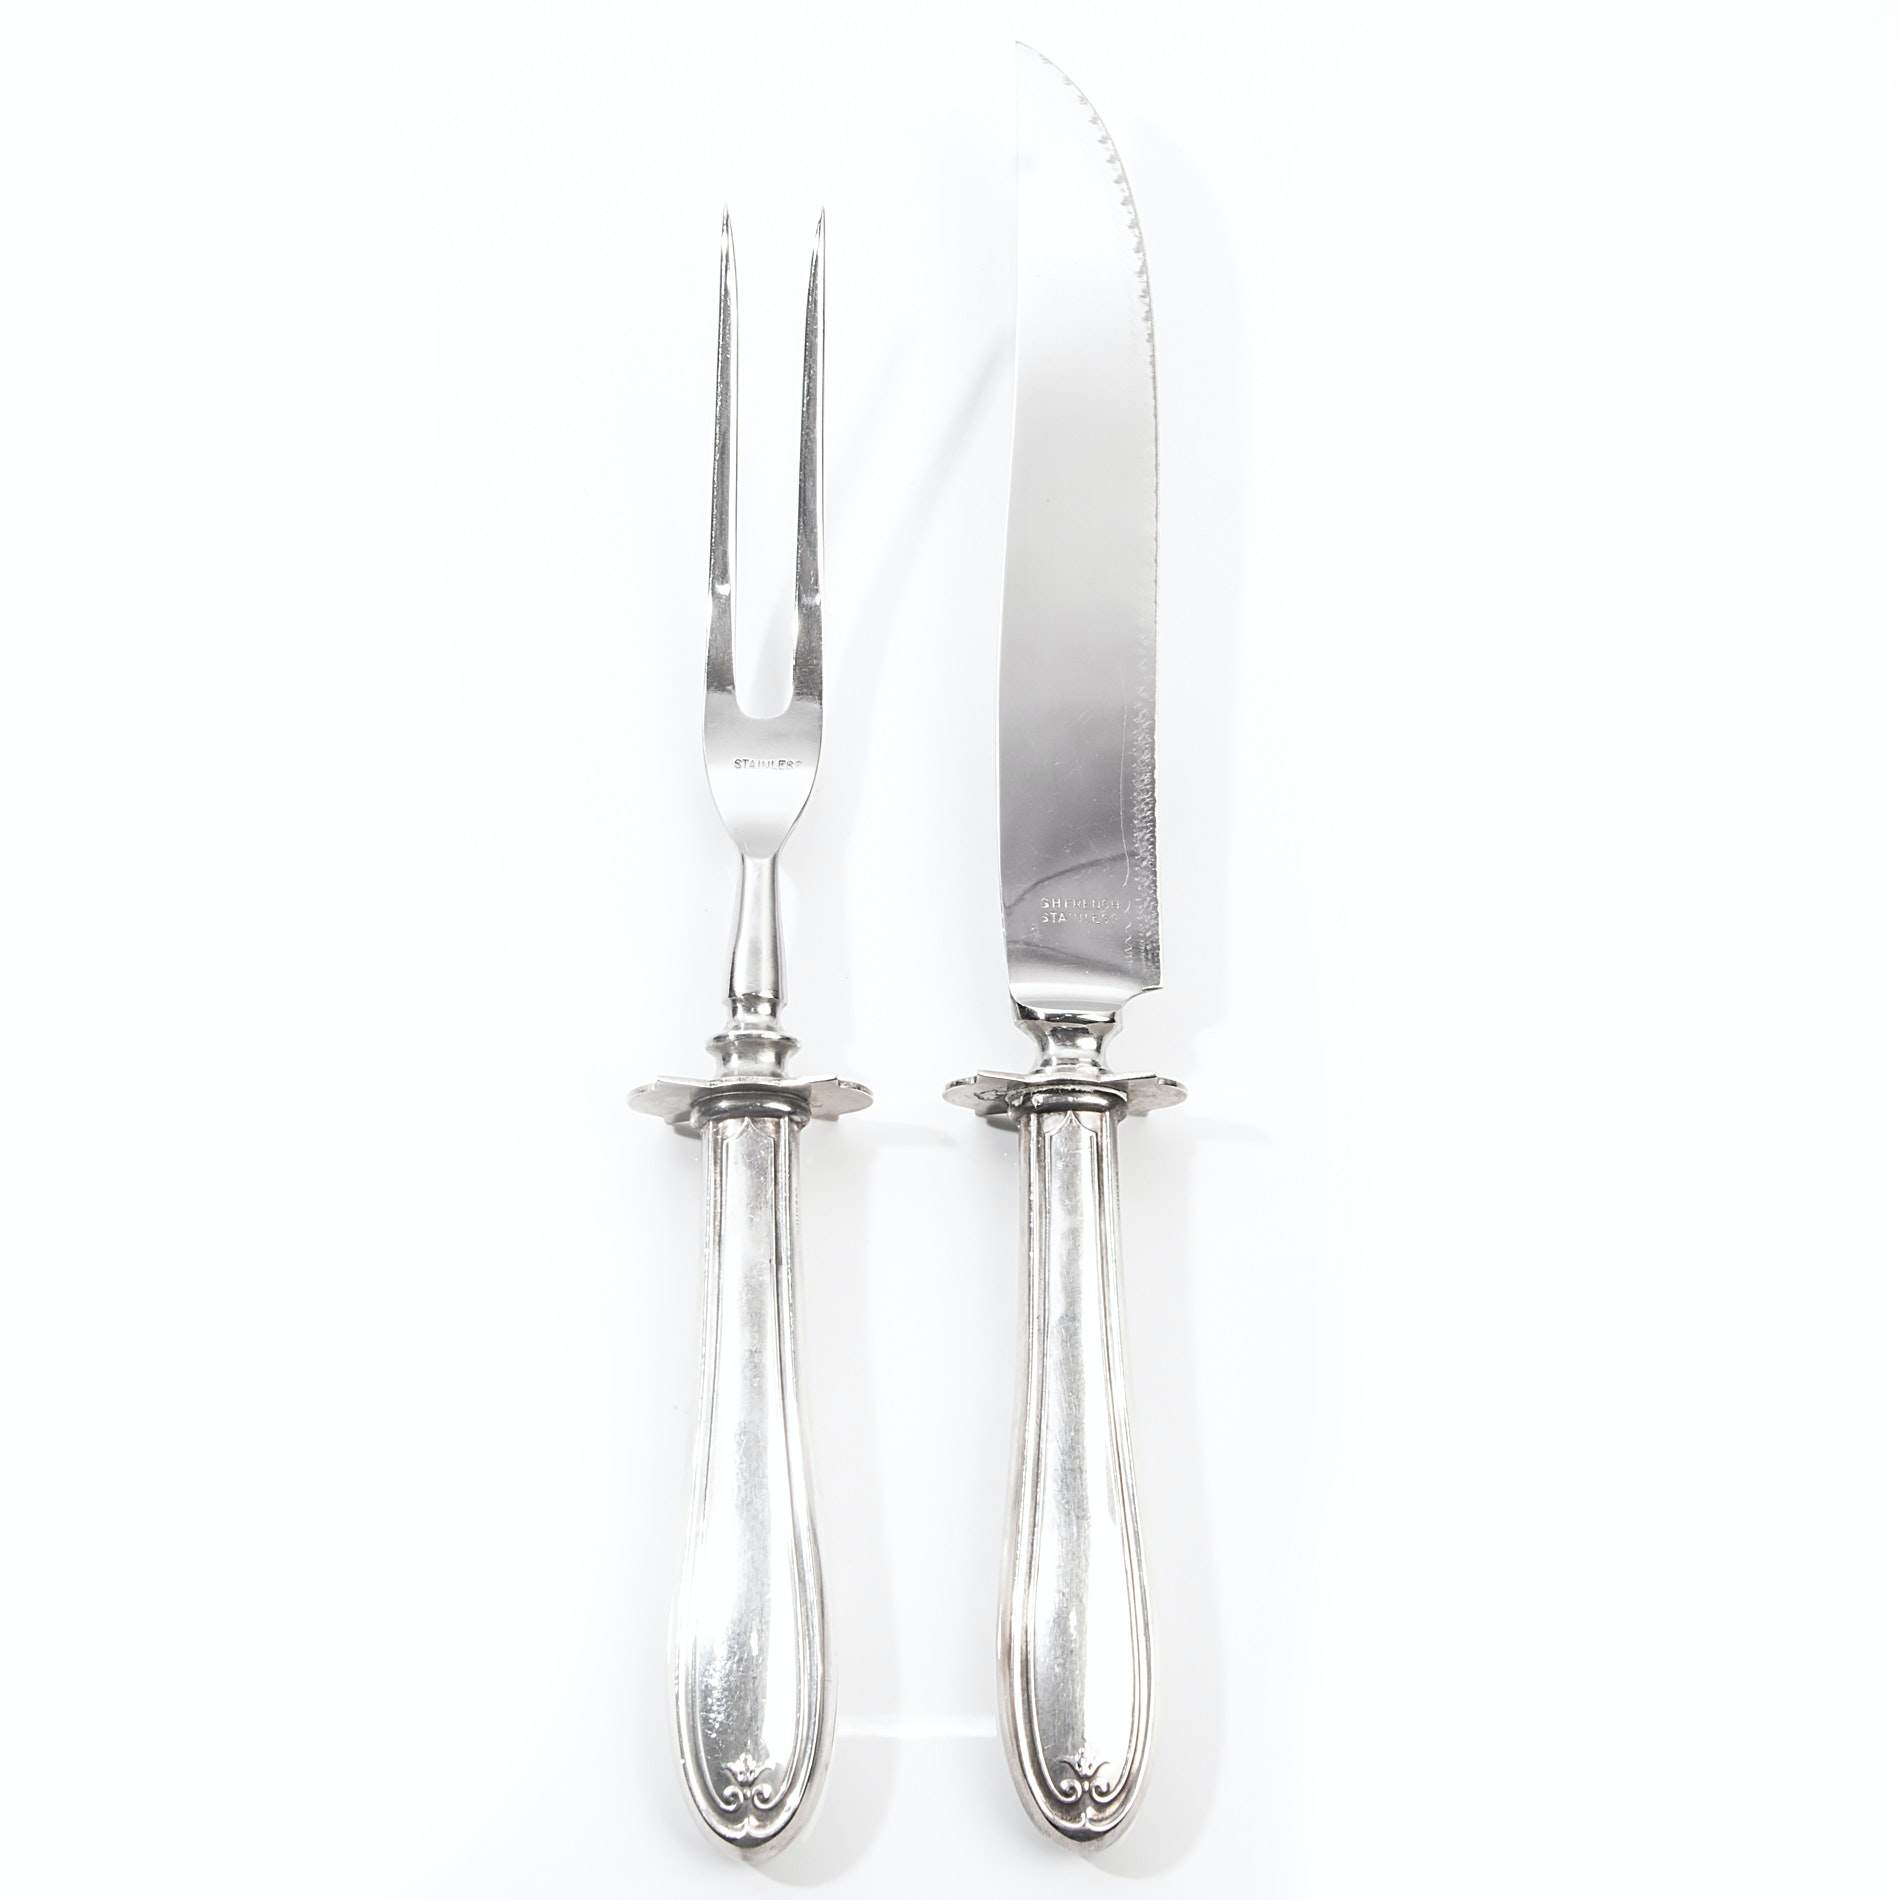 G.H. French Sterling Silver Carving Set